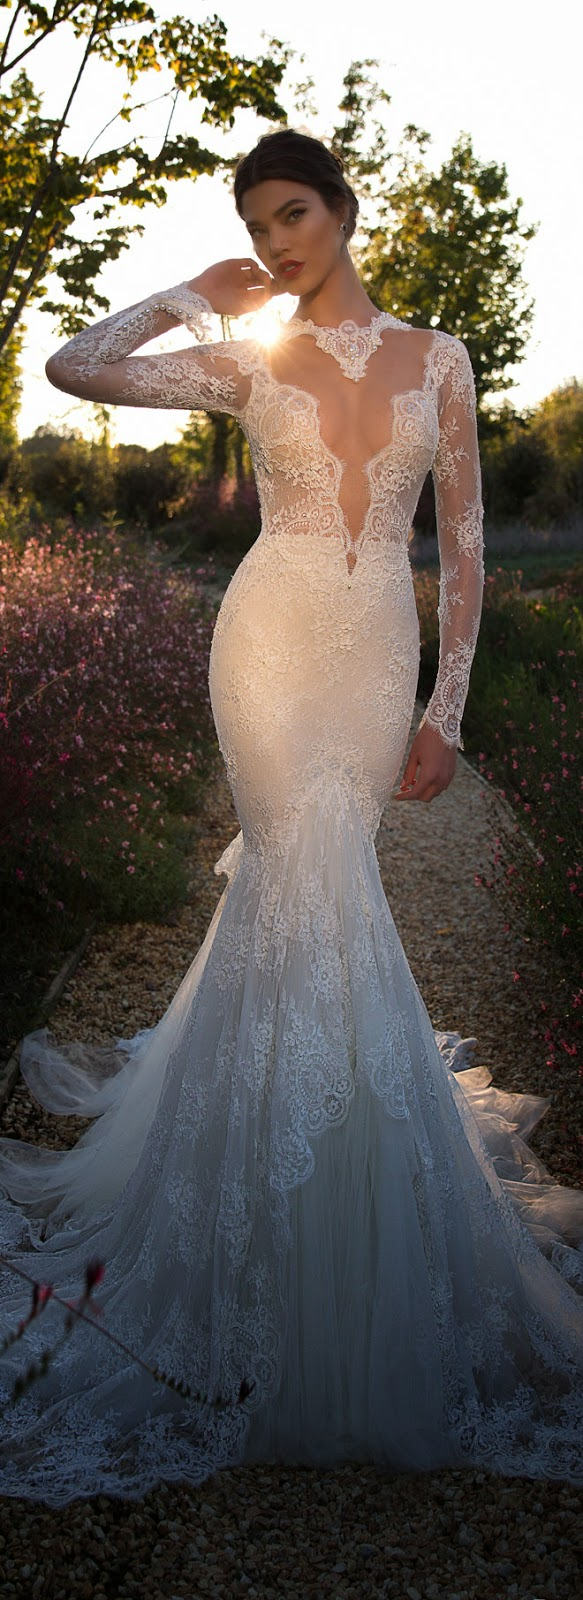 news real life brides budget stunning wedding dresses